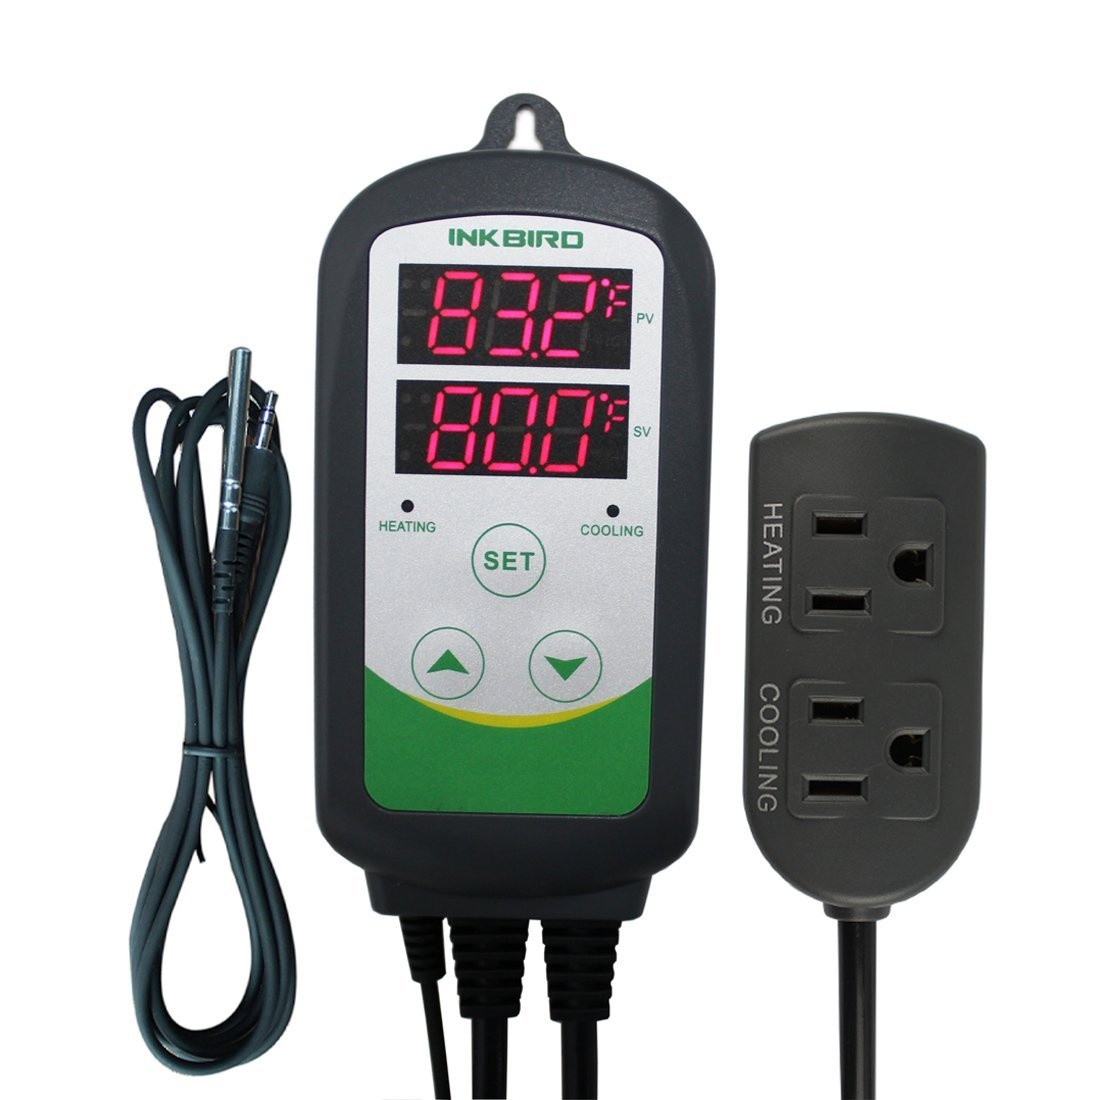 Inkbird ITC-310T Pre-Wired Digital Heating /& Cooling Temperature Controller 110V